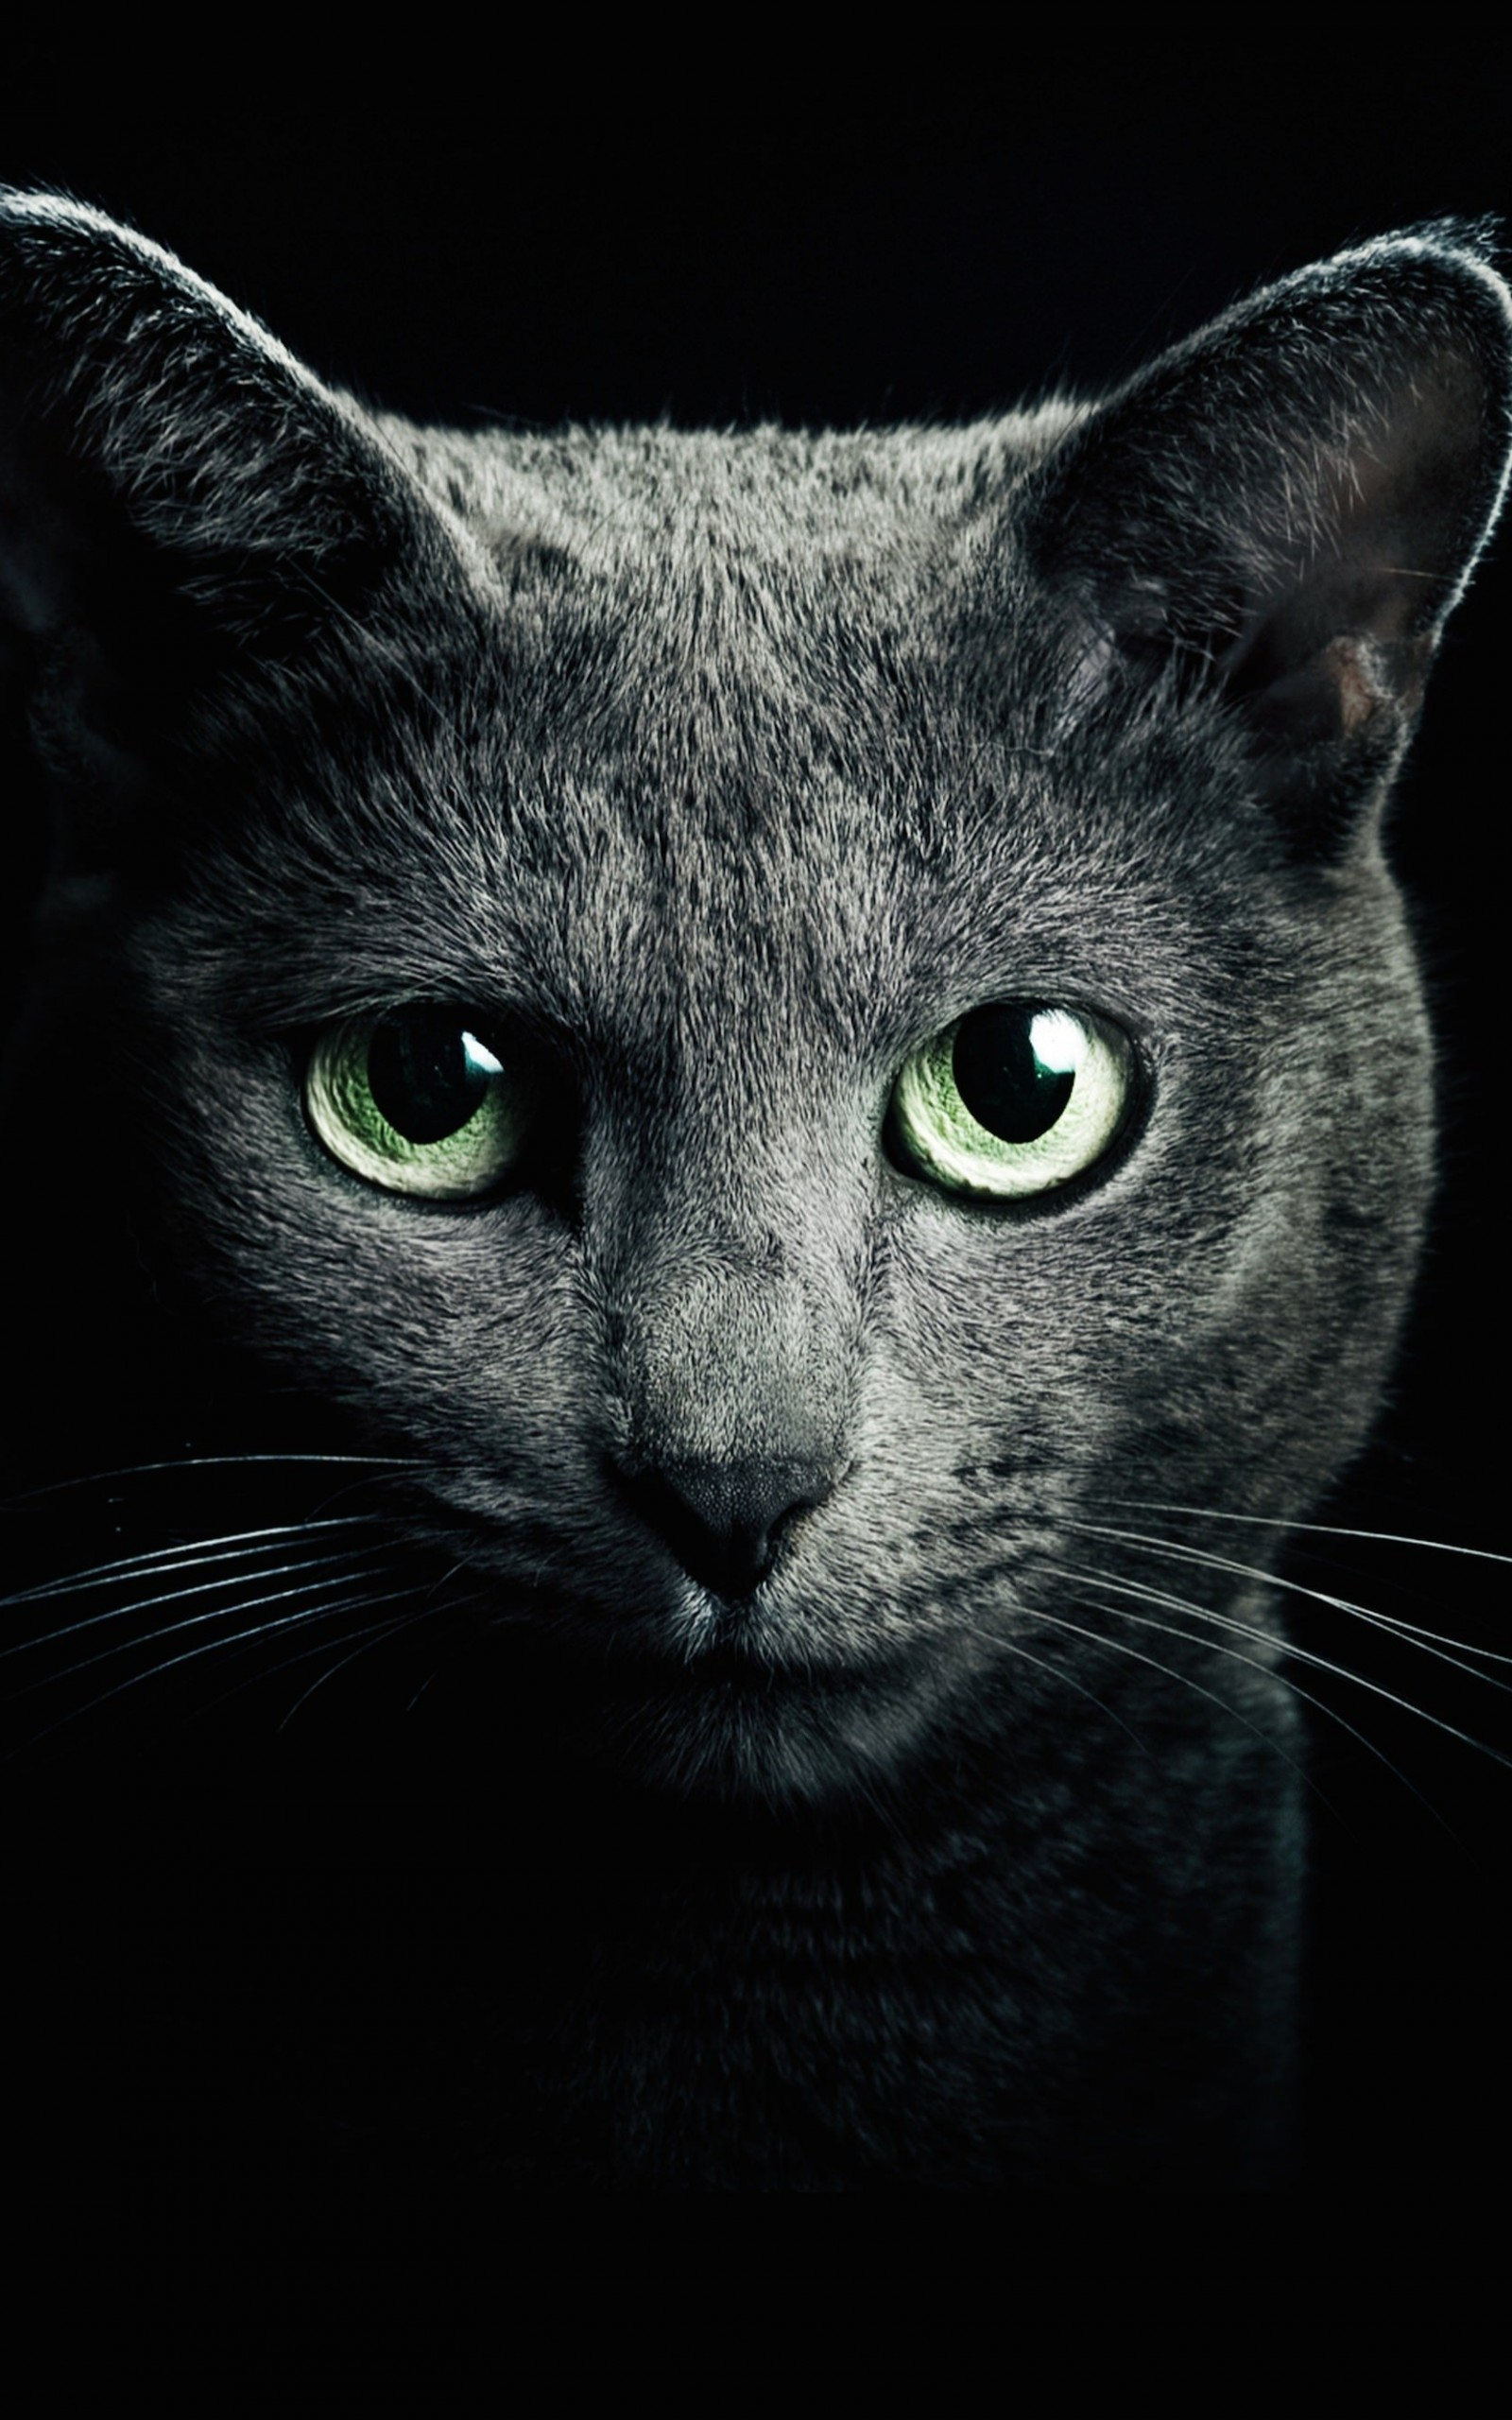 Russian Blue Cat Wallpaper for Amazon Kindle Fire HDX 8.9